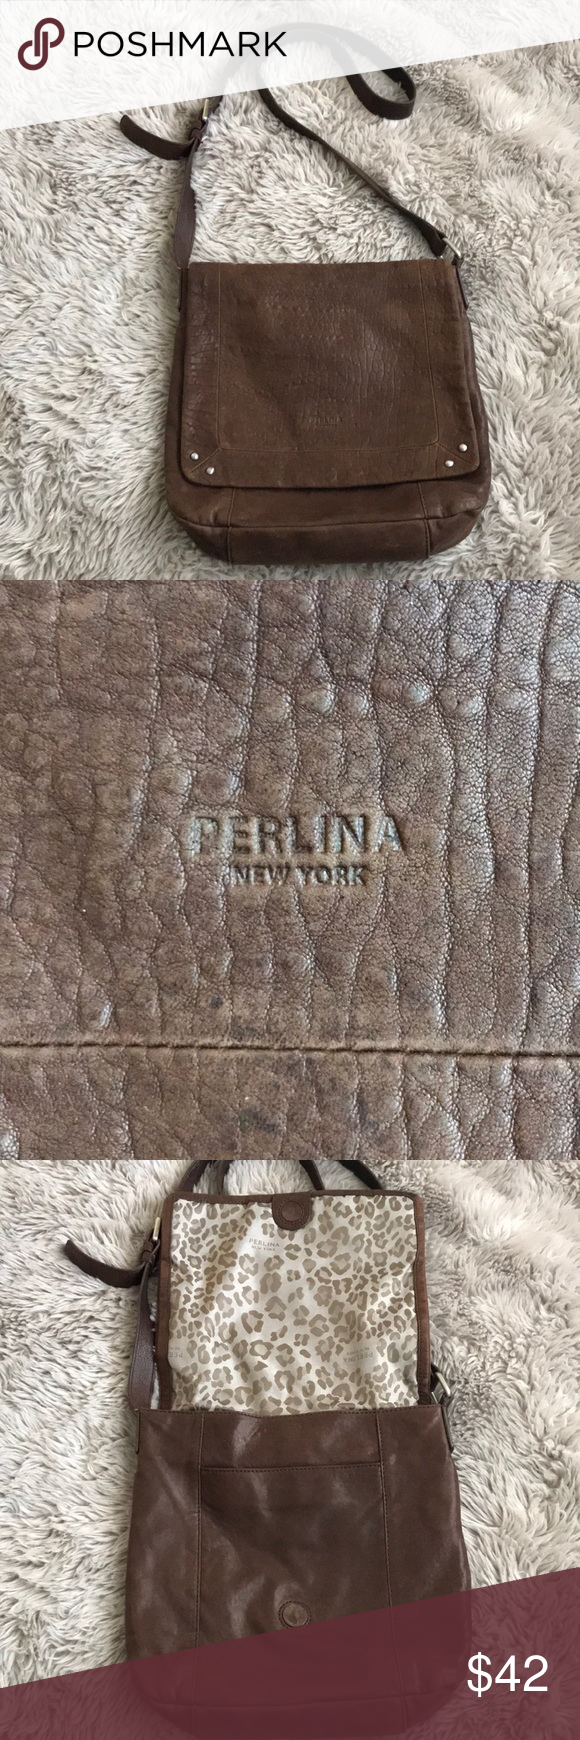 Perlina New York Crossbody Brown Leather Bag Beautiful Pre Loved Purse From In Supple The Is So Soft But